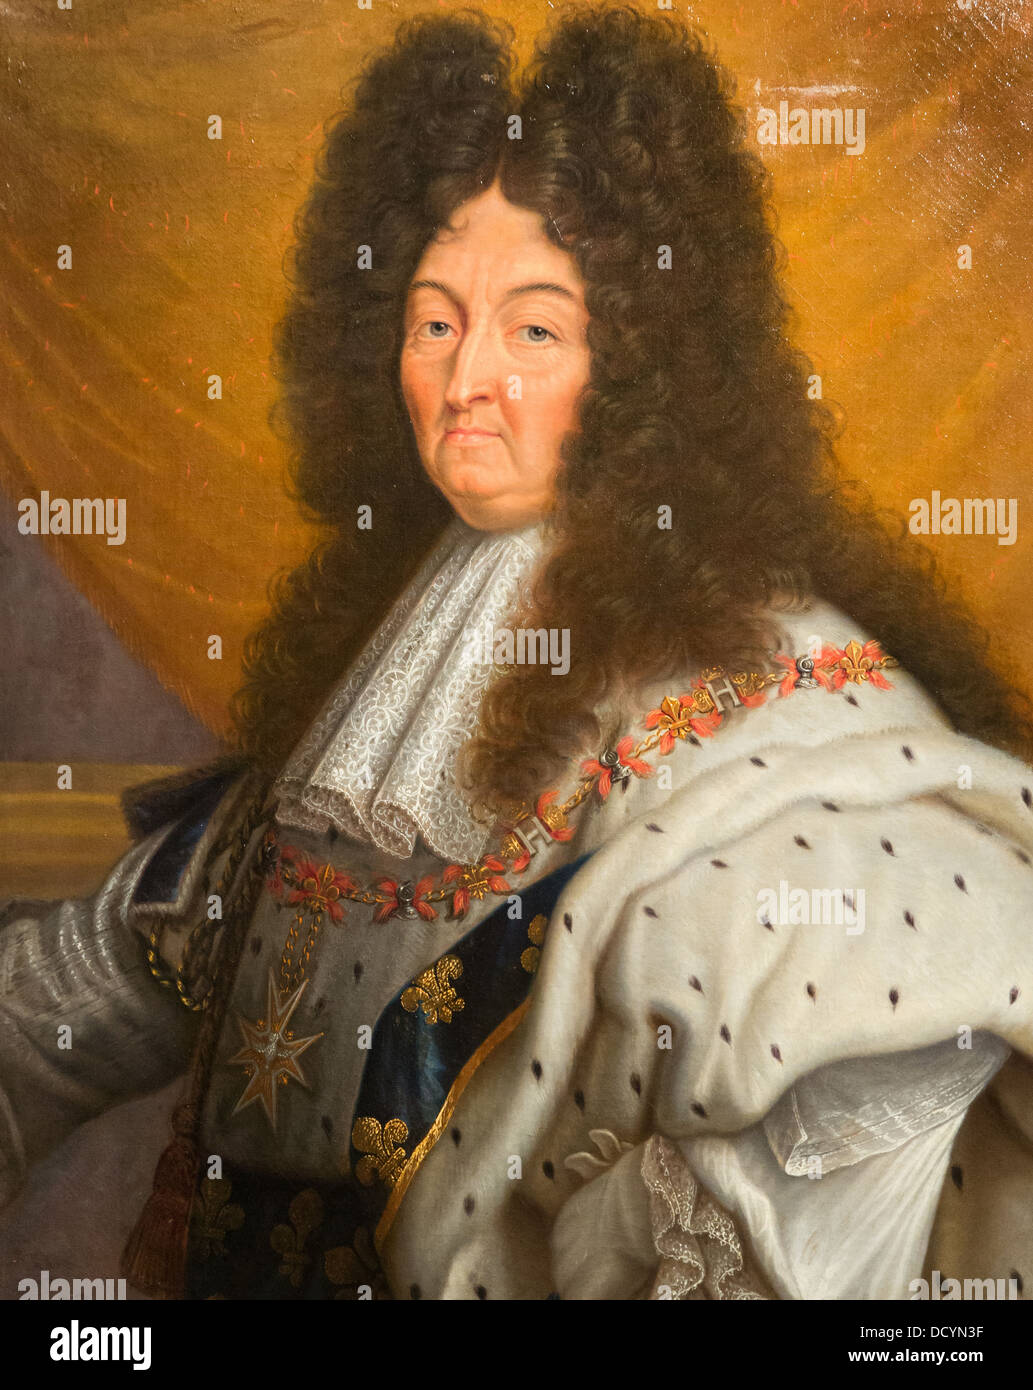 18th century louis xiv king of france andry after hyacinthe stock photo royalty free image. Black Bedroom Furniture Sets. Home Design Ideas